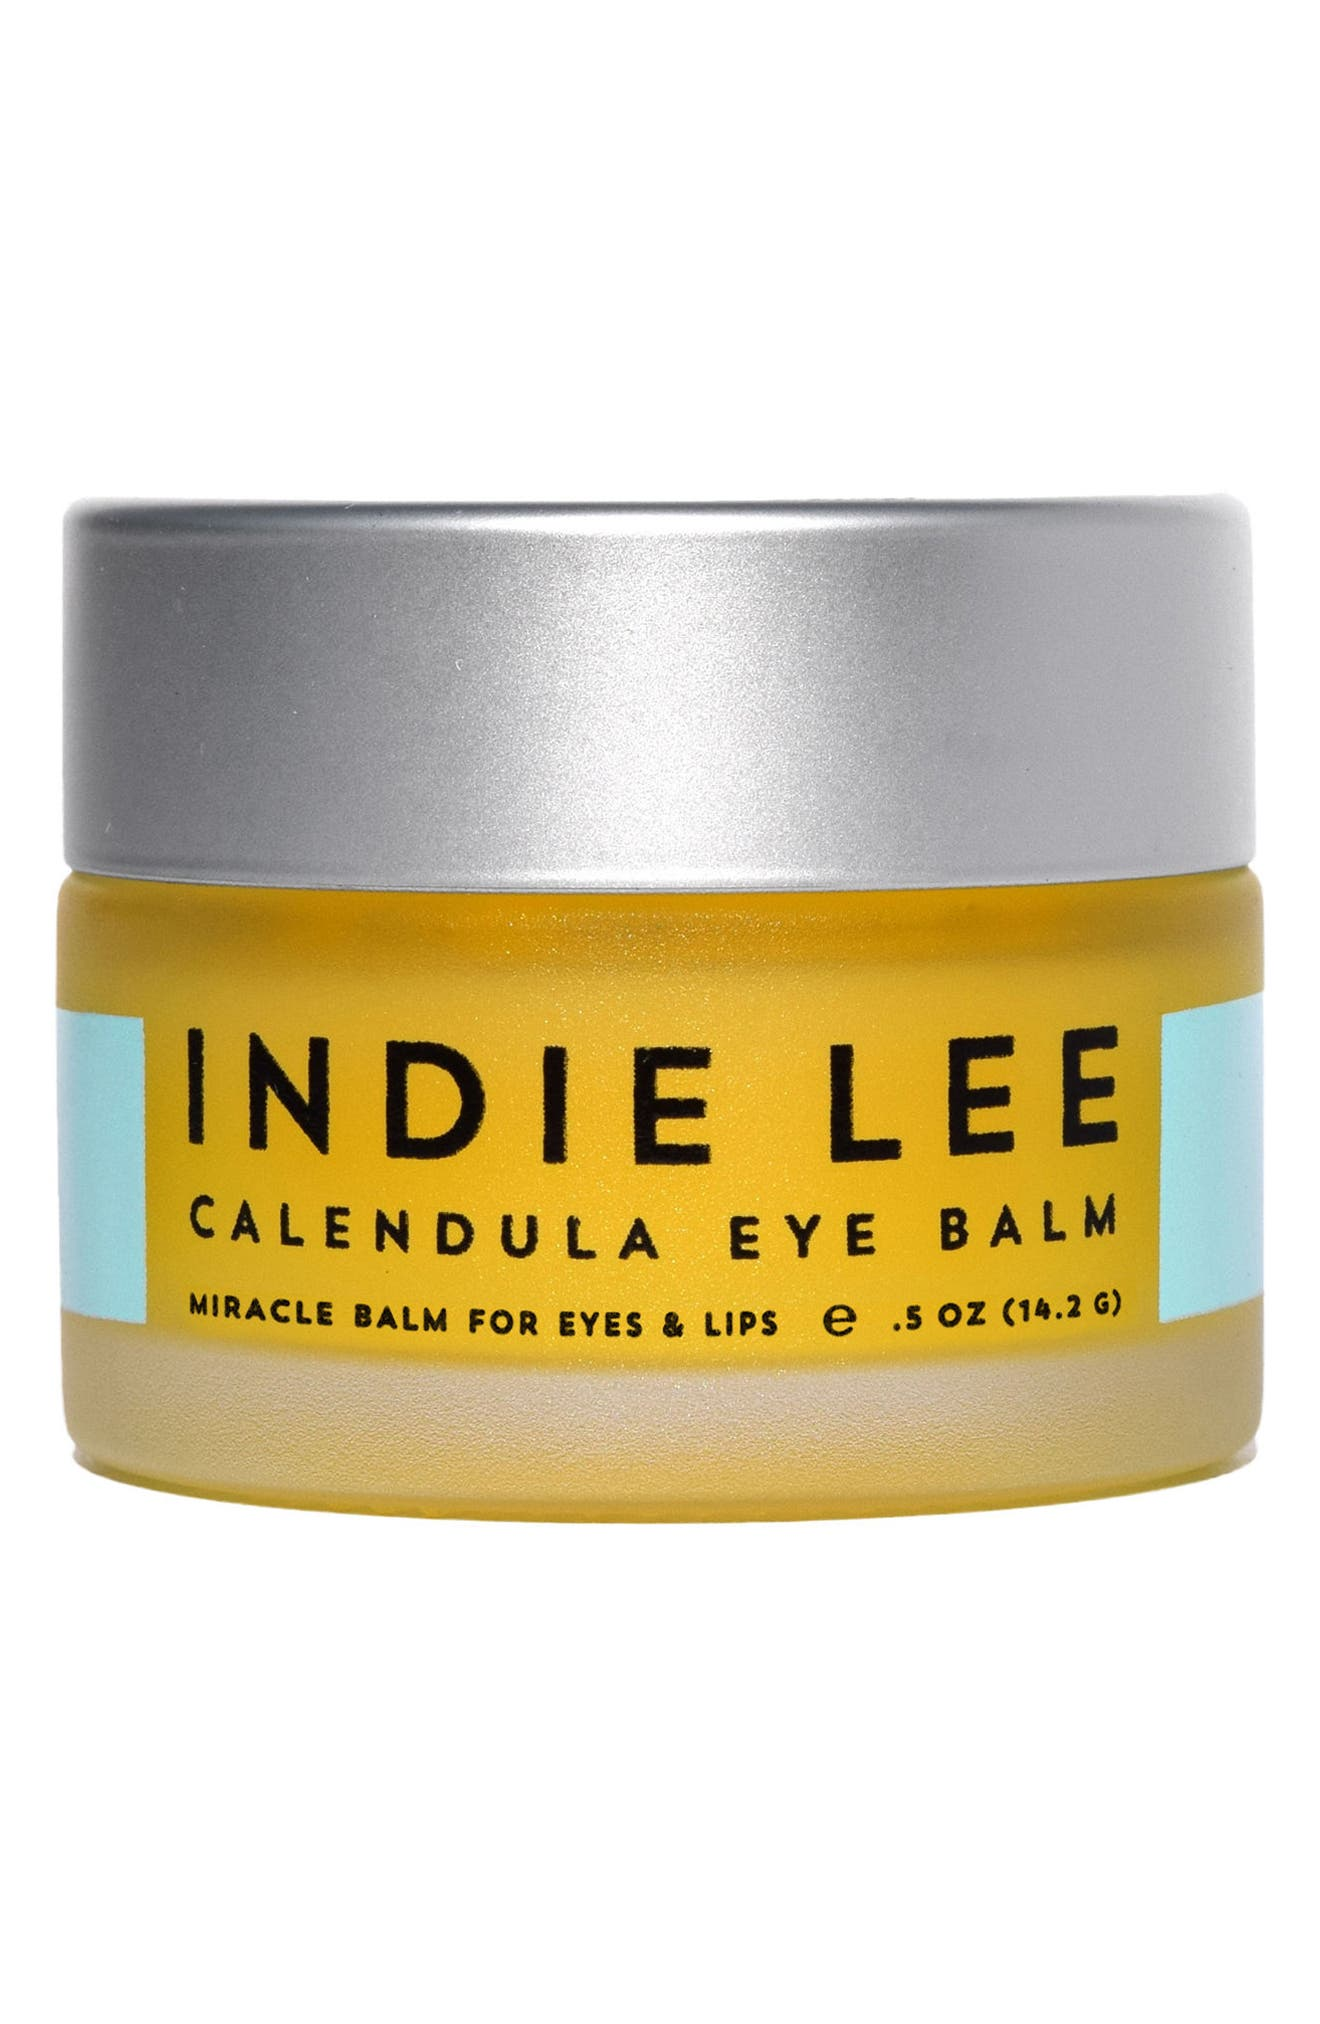 Calendula Eye Balm,                         Main,                         color, No Color